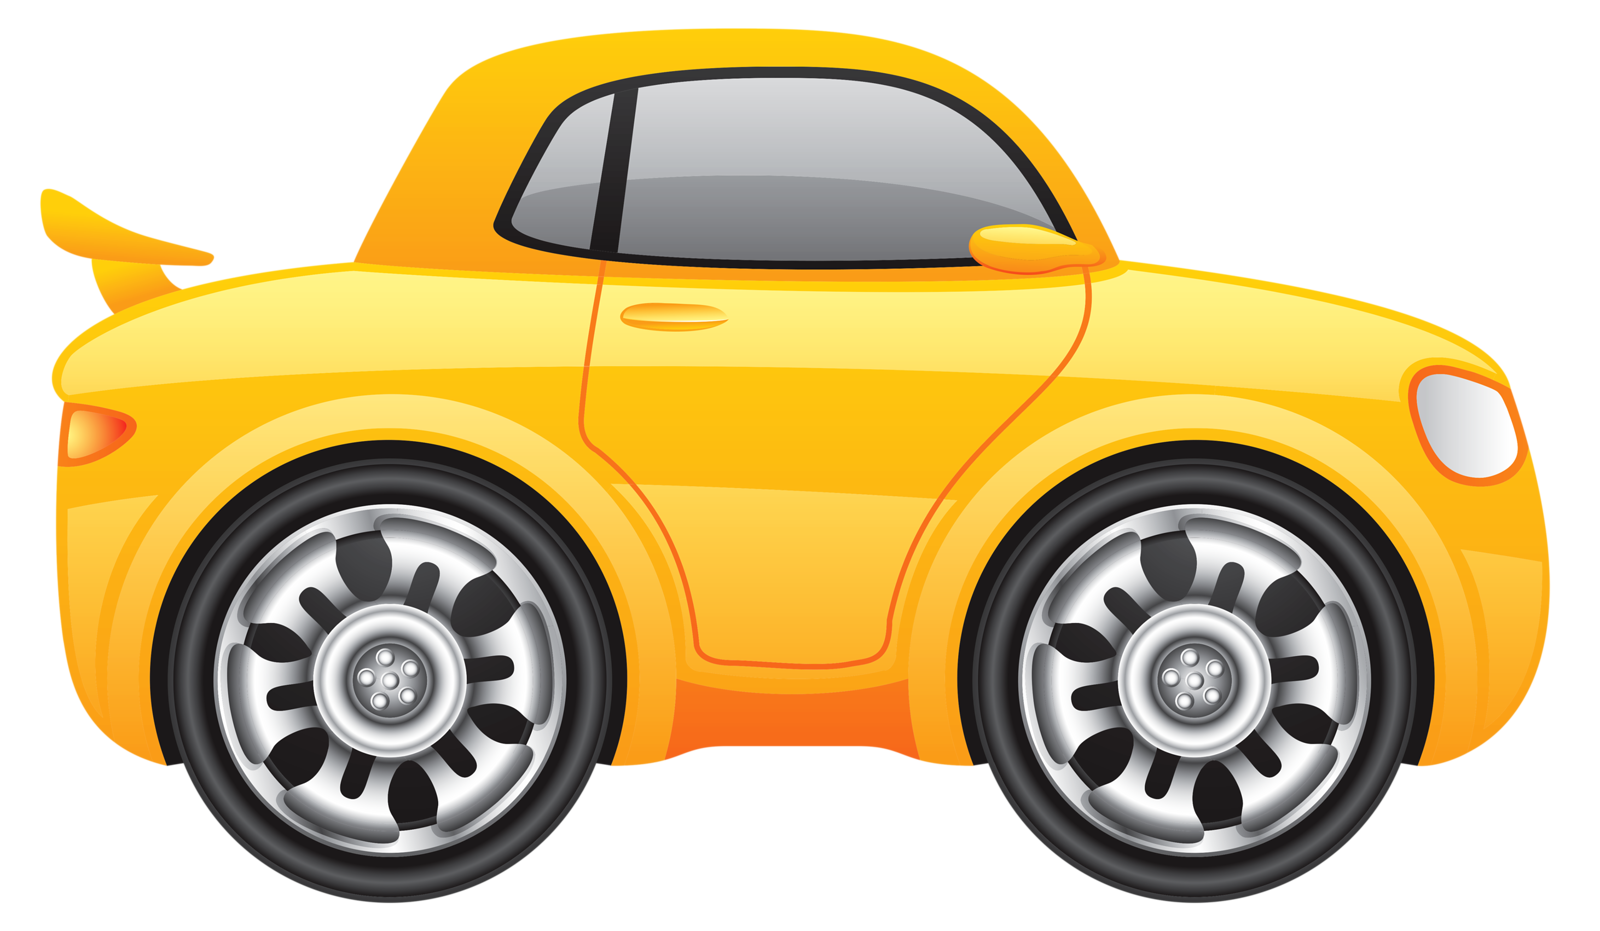 45 Png Cars Cars Clip Art Y Vehicles